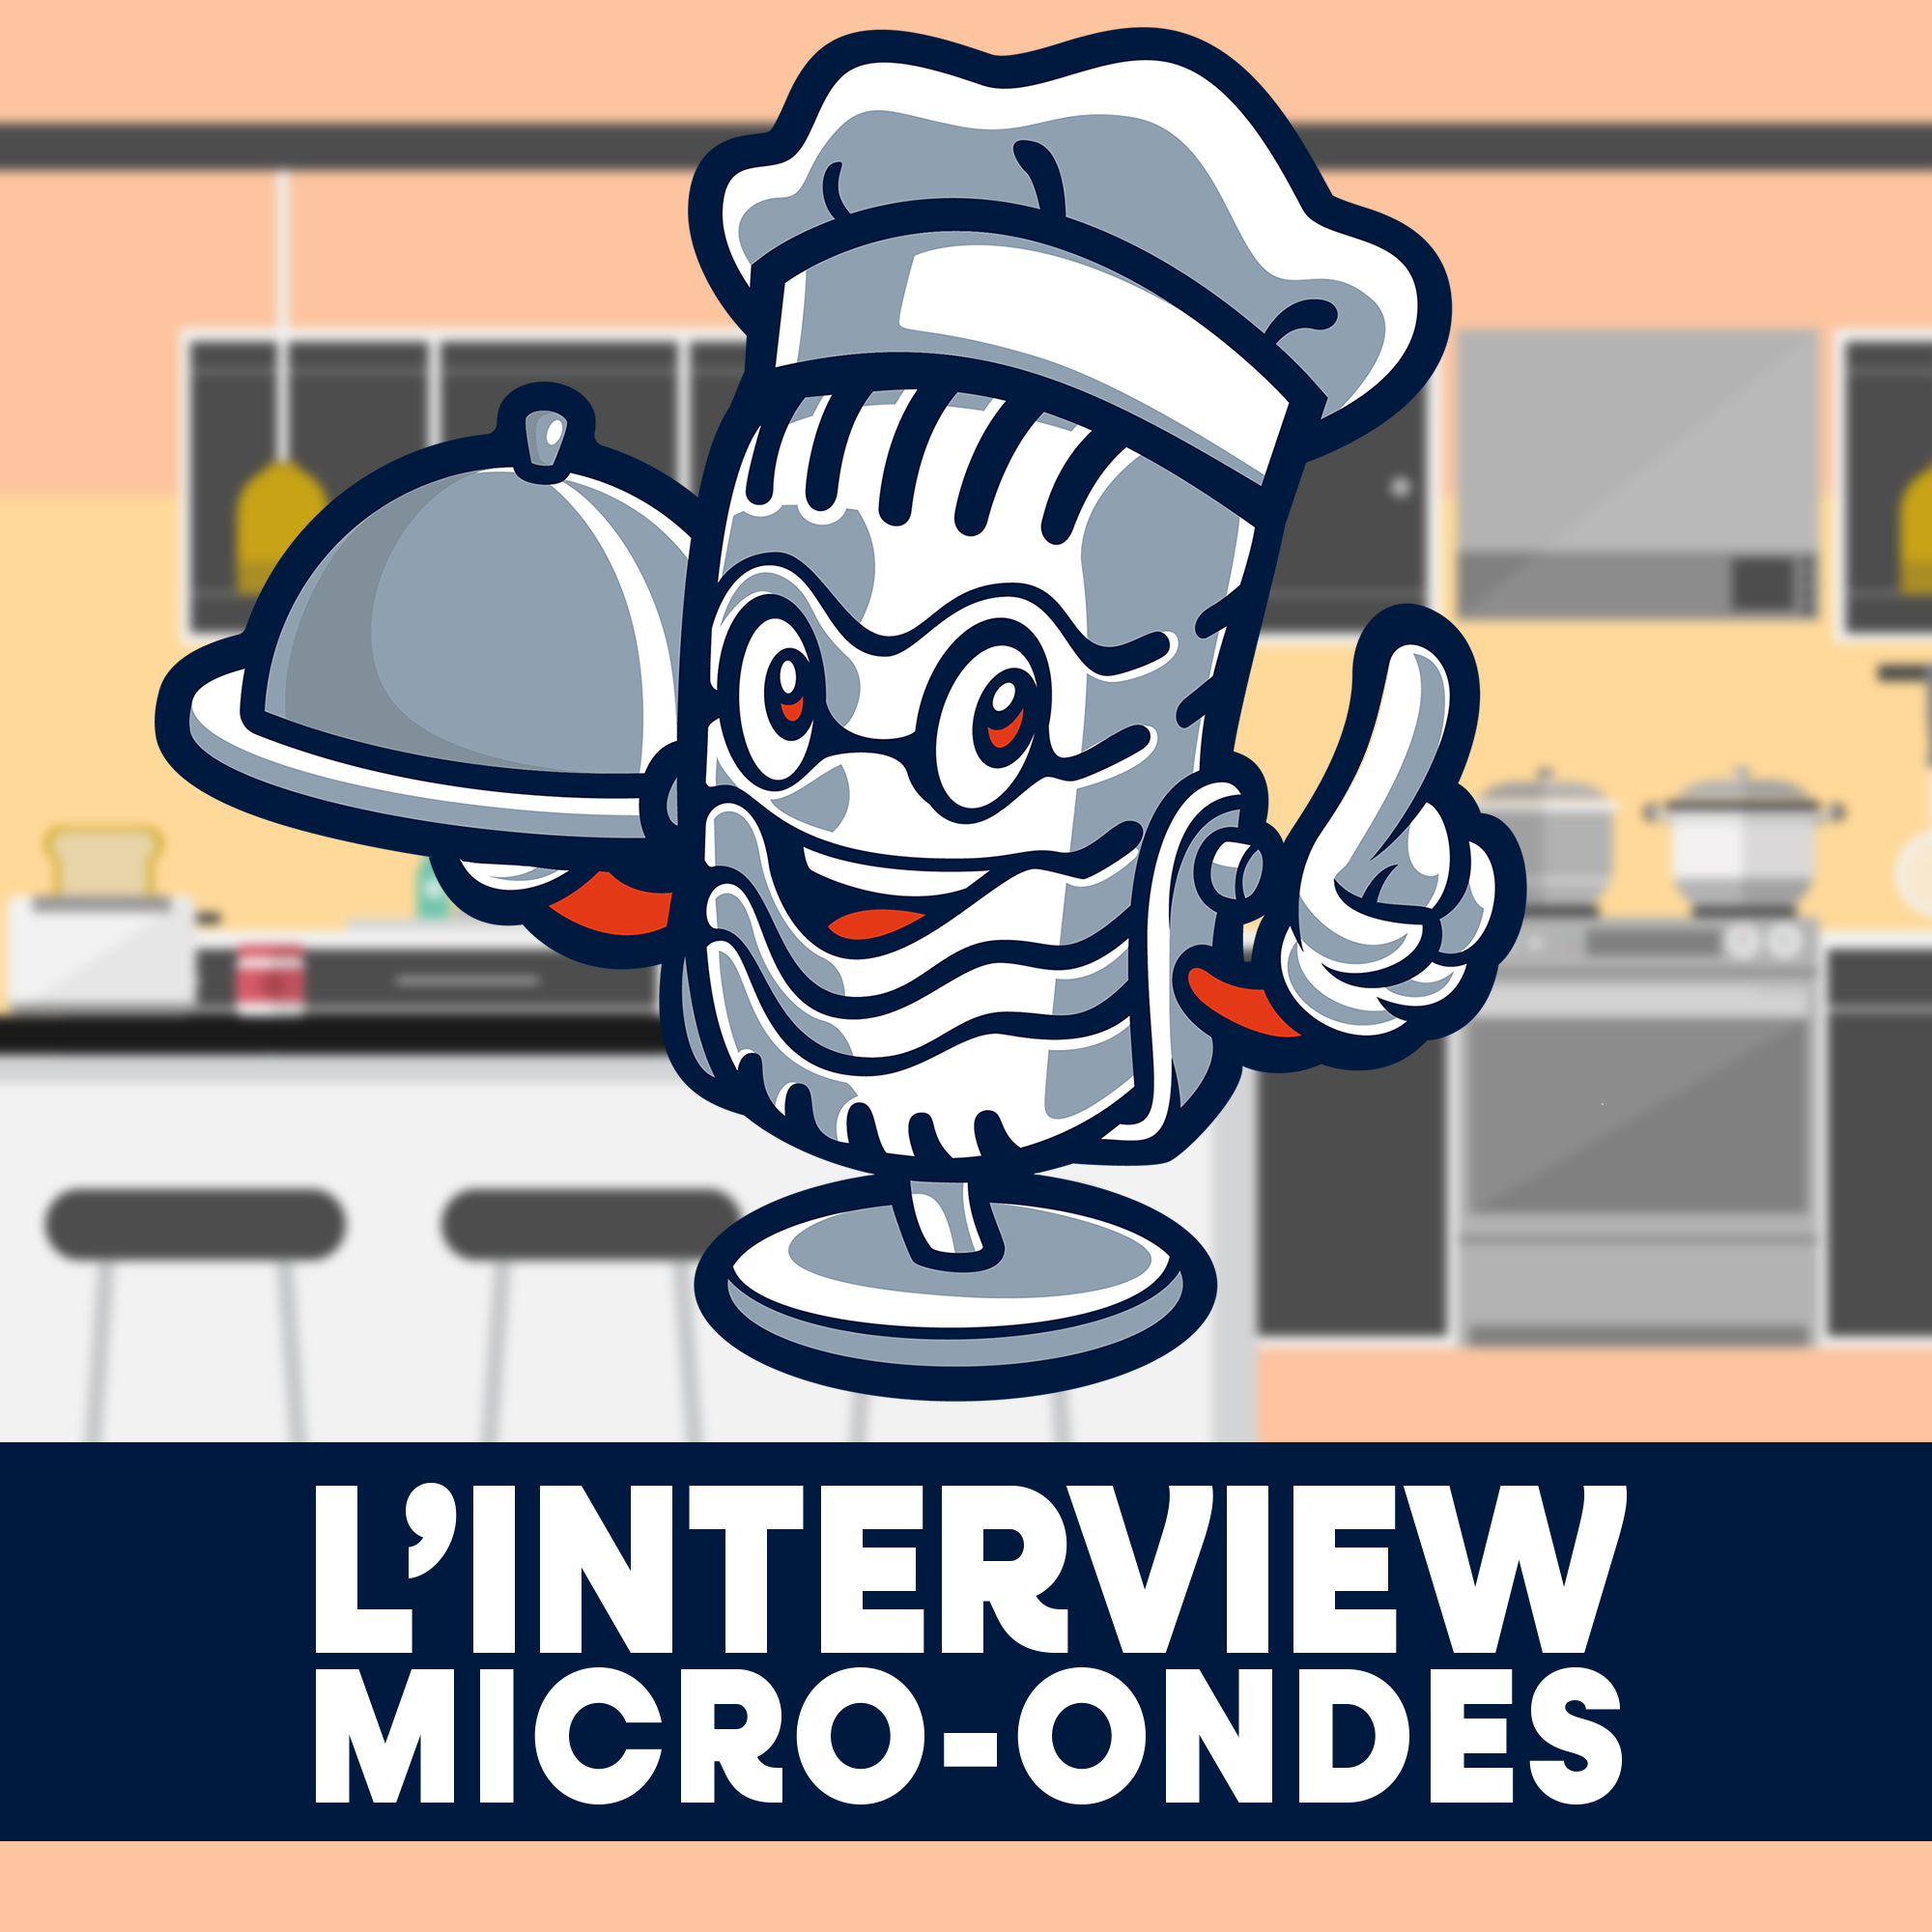 L'Interview Micro-Ondes